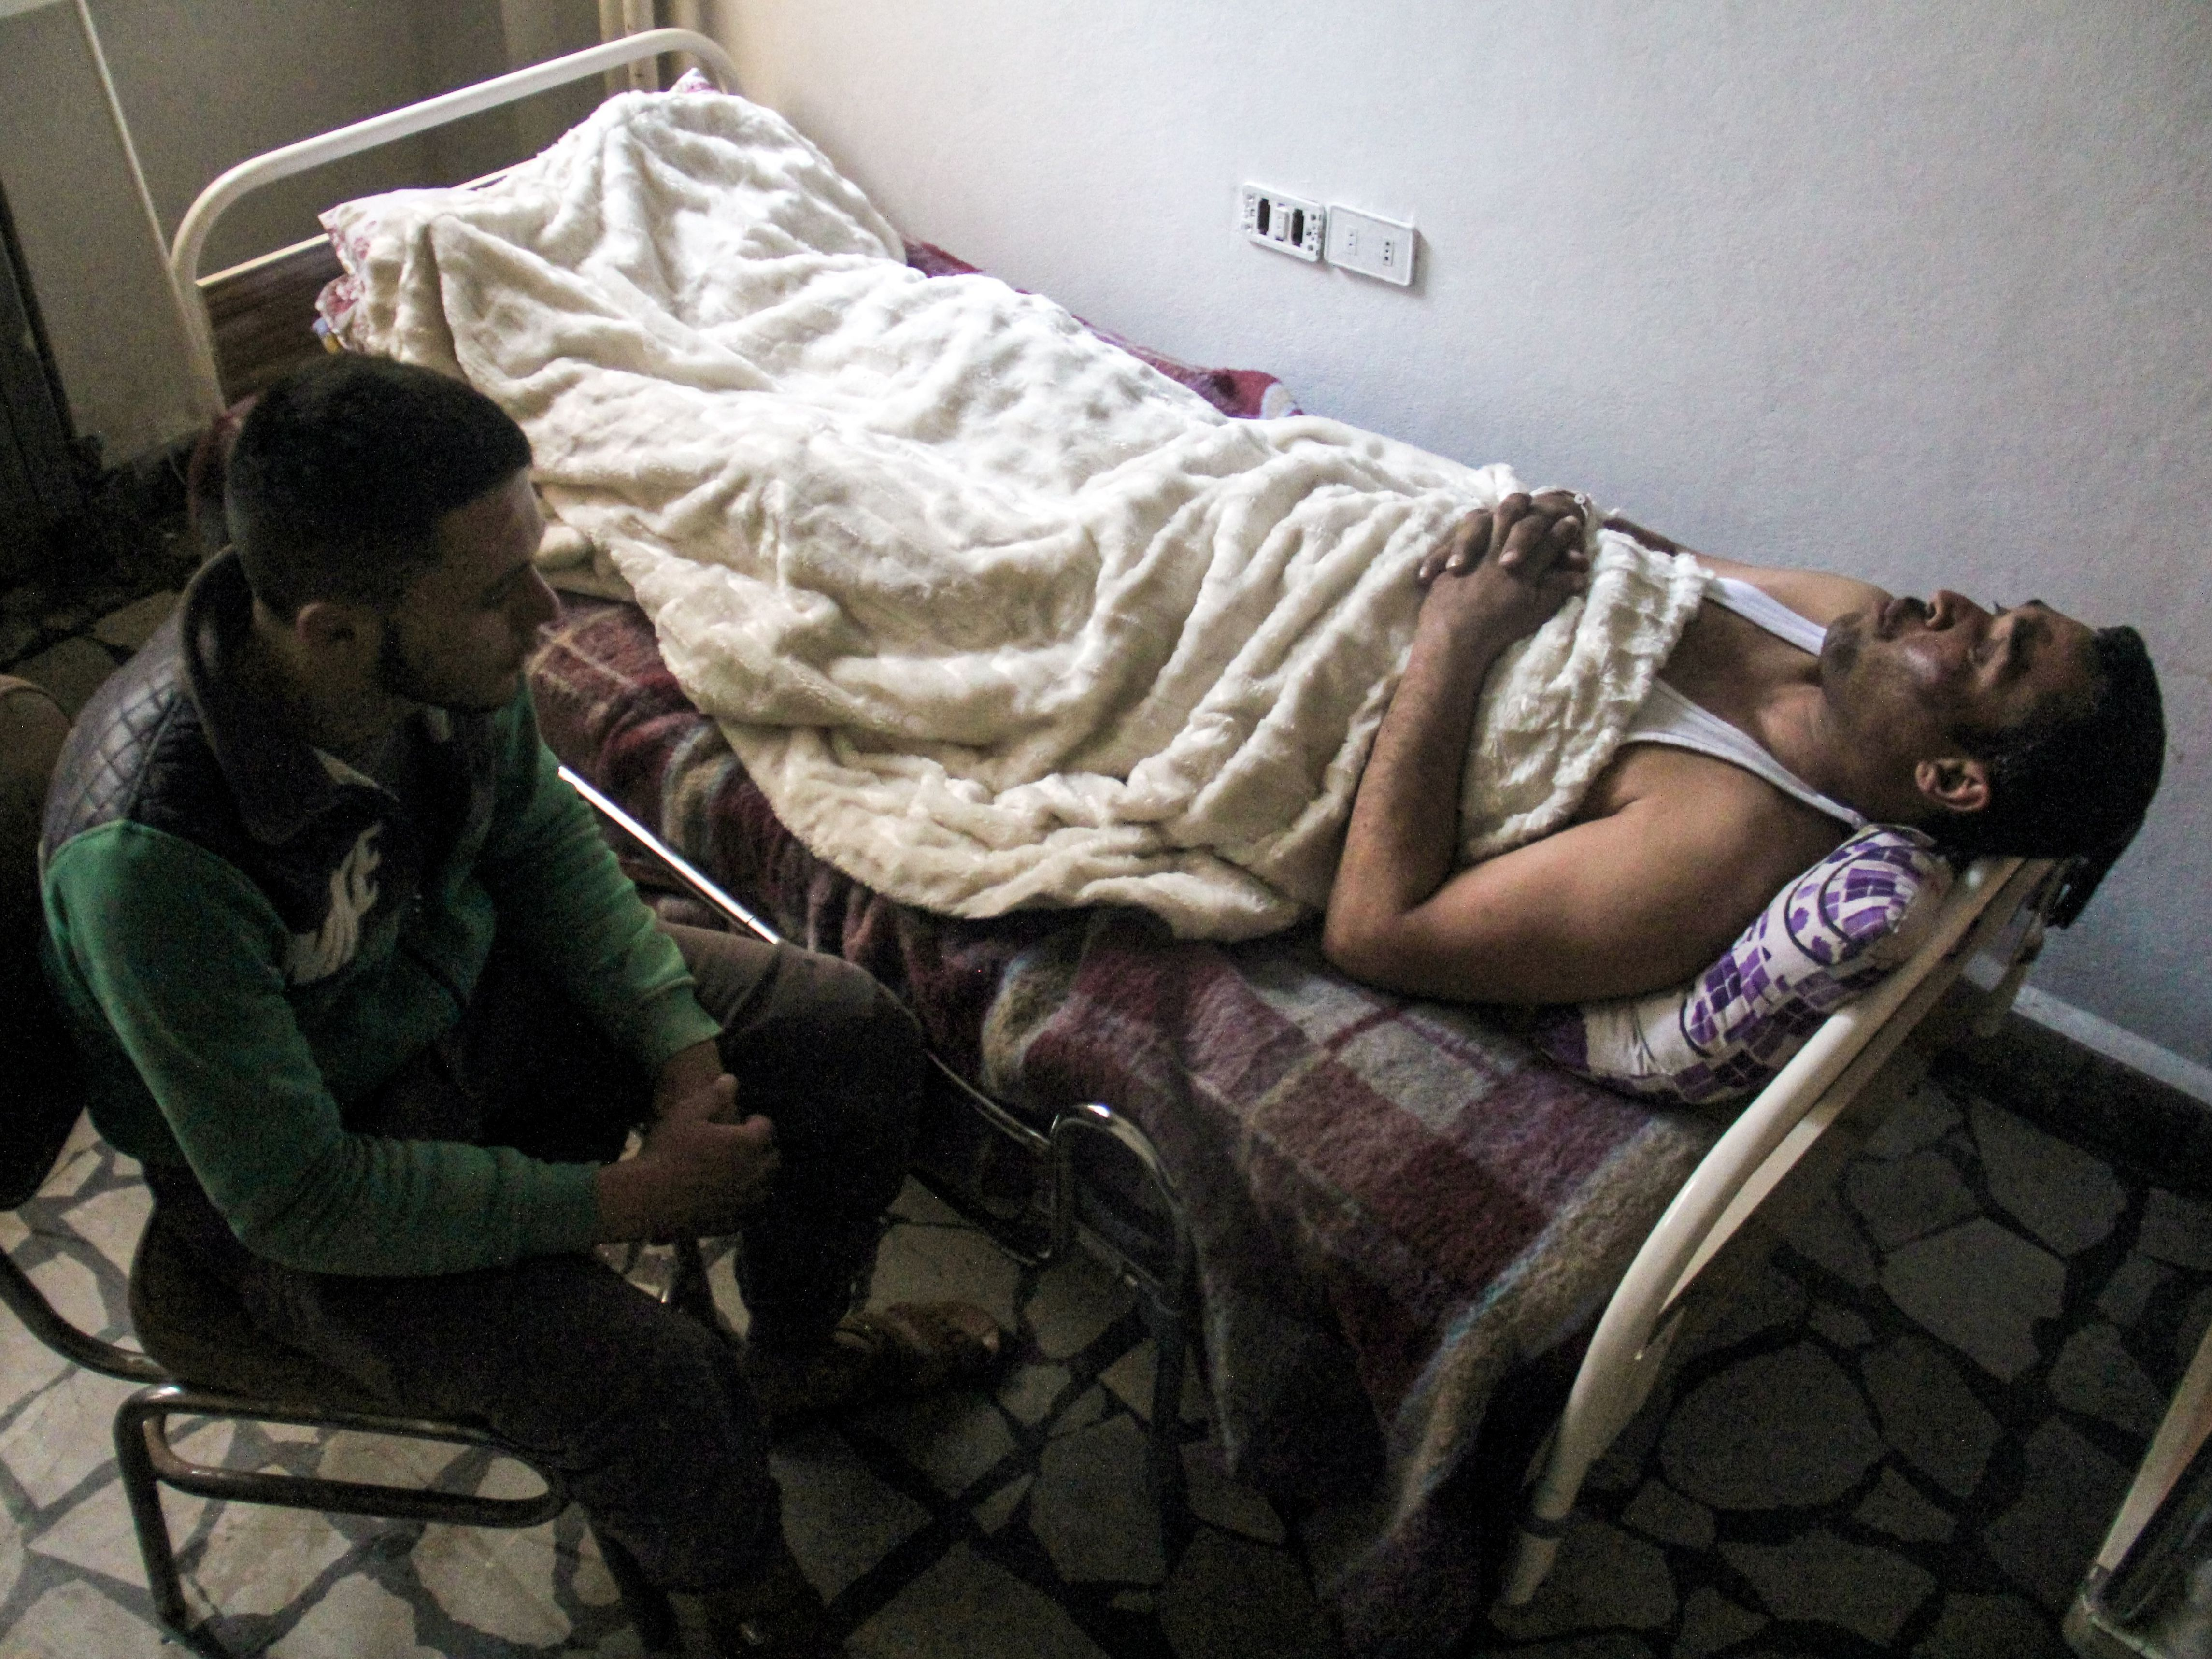 Hassan Youssef, a 40-year-old victim of the April 4 chemical attack in Khan Shaykun, receives medical care in a hospital in the nearby Syrian city of Idlib on Thursday.     (Omar Haj Kadour/AFP/Getty Images)